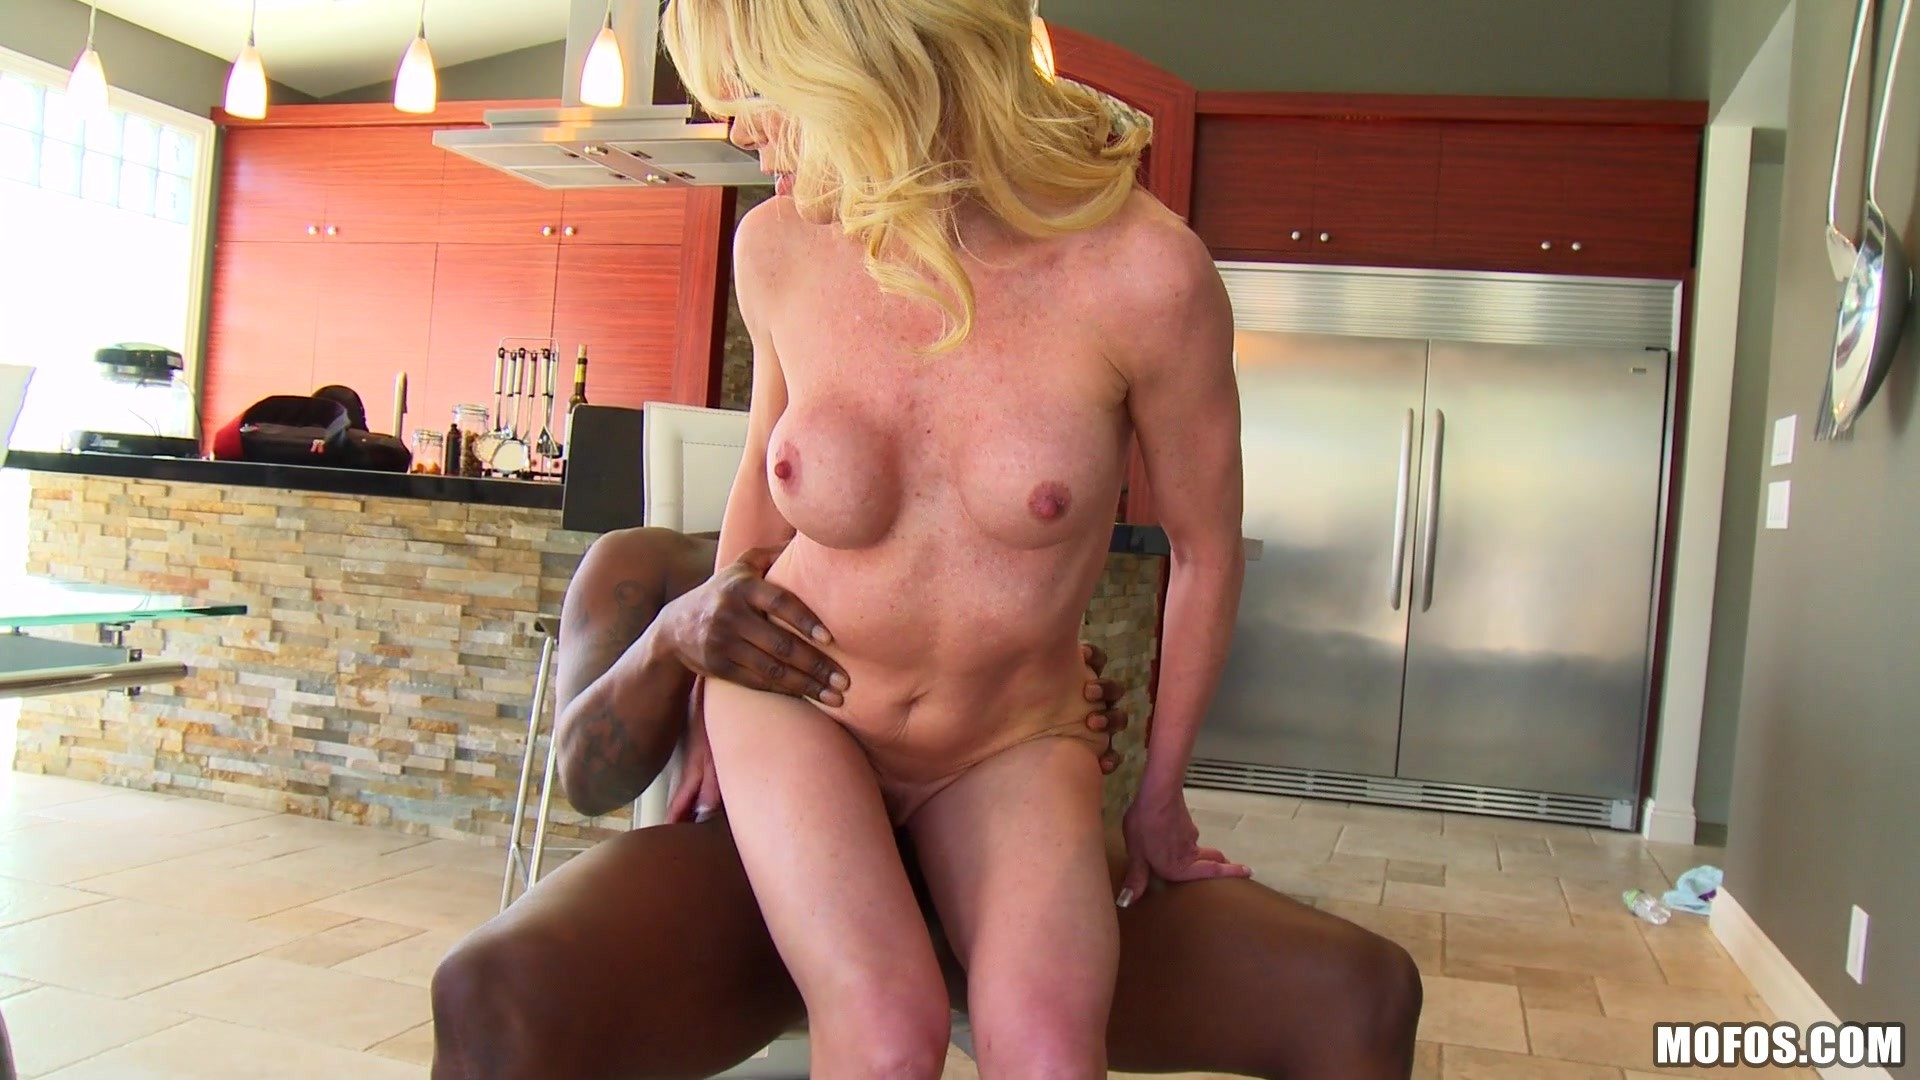 Mofos milfs like it black campaignin for cock starring kaylee brookshi 6